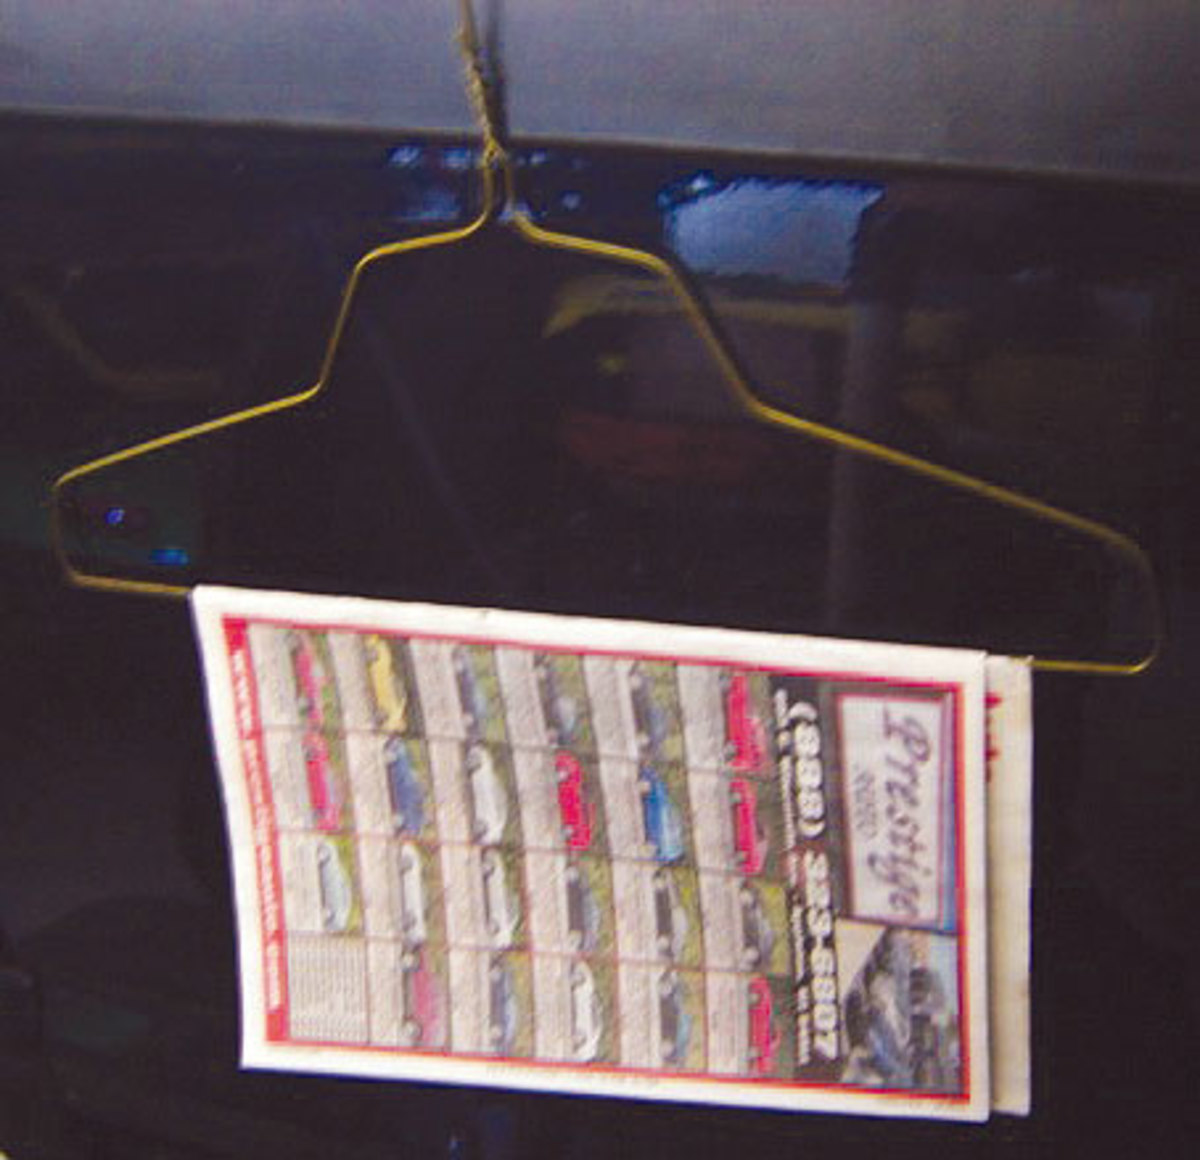 I constantly pick up the free cars-for-sale shoppers from the gas station. I pull the two staples out of the spine, drape the pages over a clothes hanger and have an unlimited supply of free shop rags. The pages work well for soaking up oil.